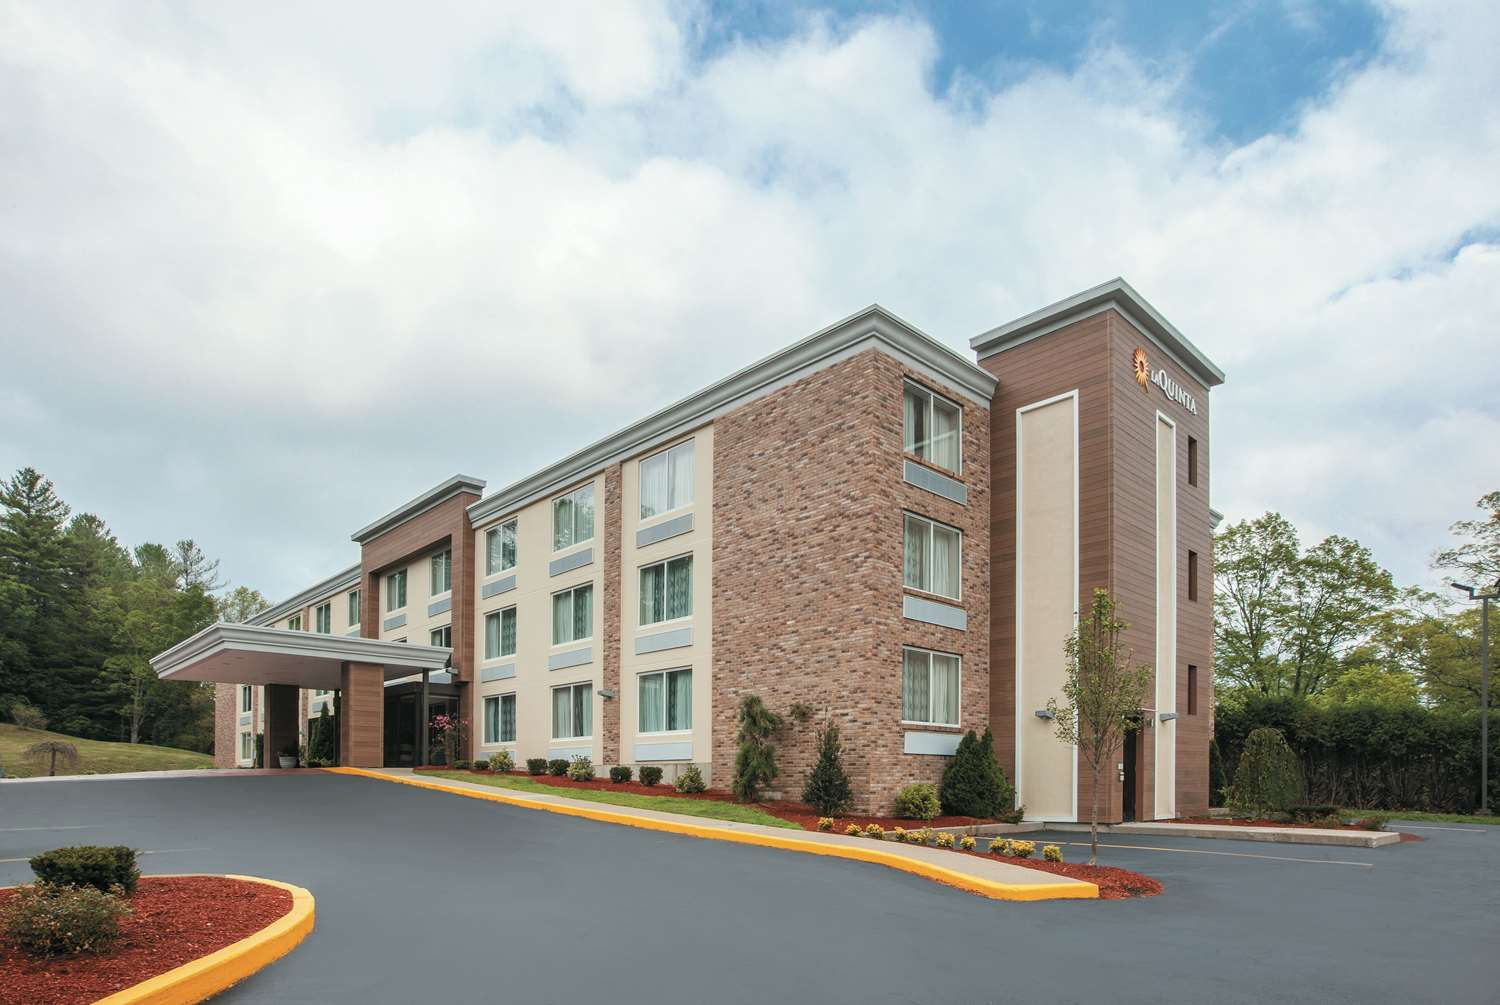 Exterior view - La Quinta Inn & Suites Sturbridge